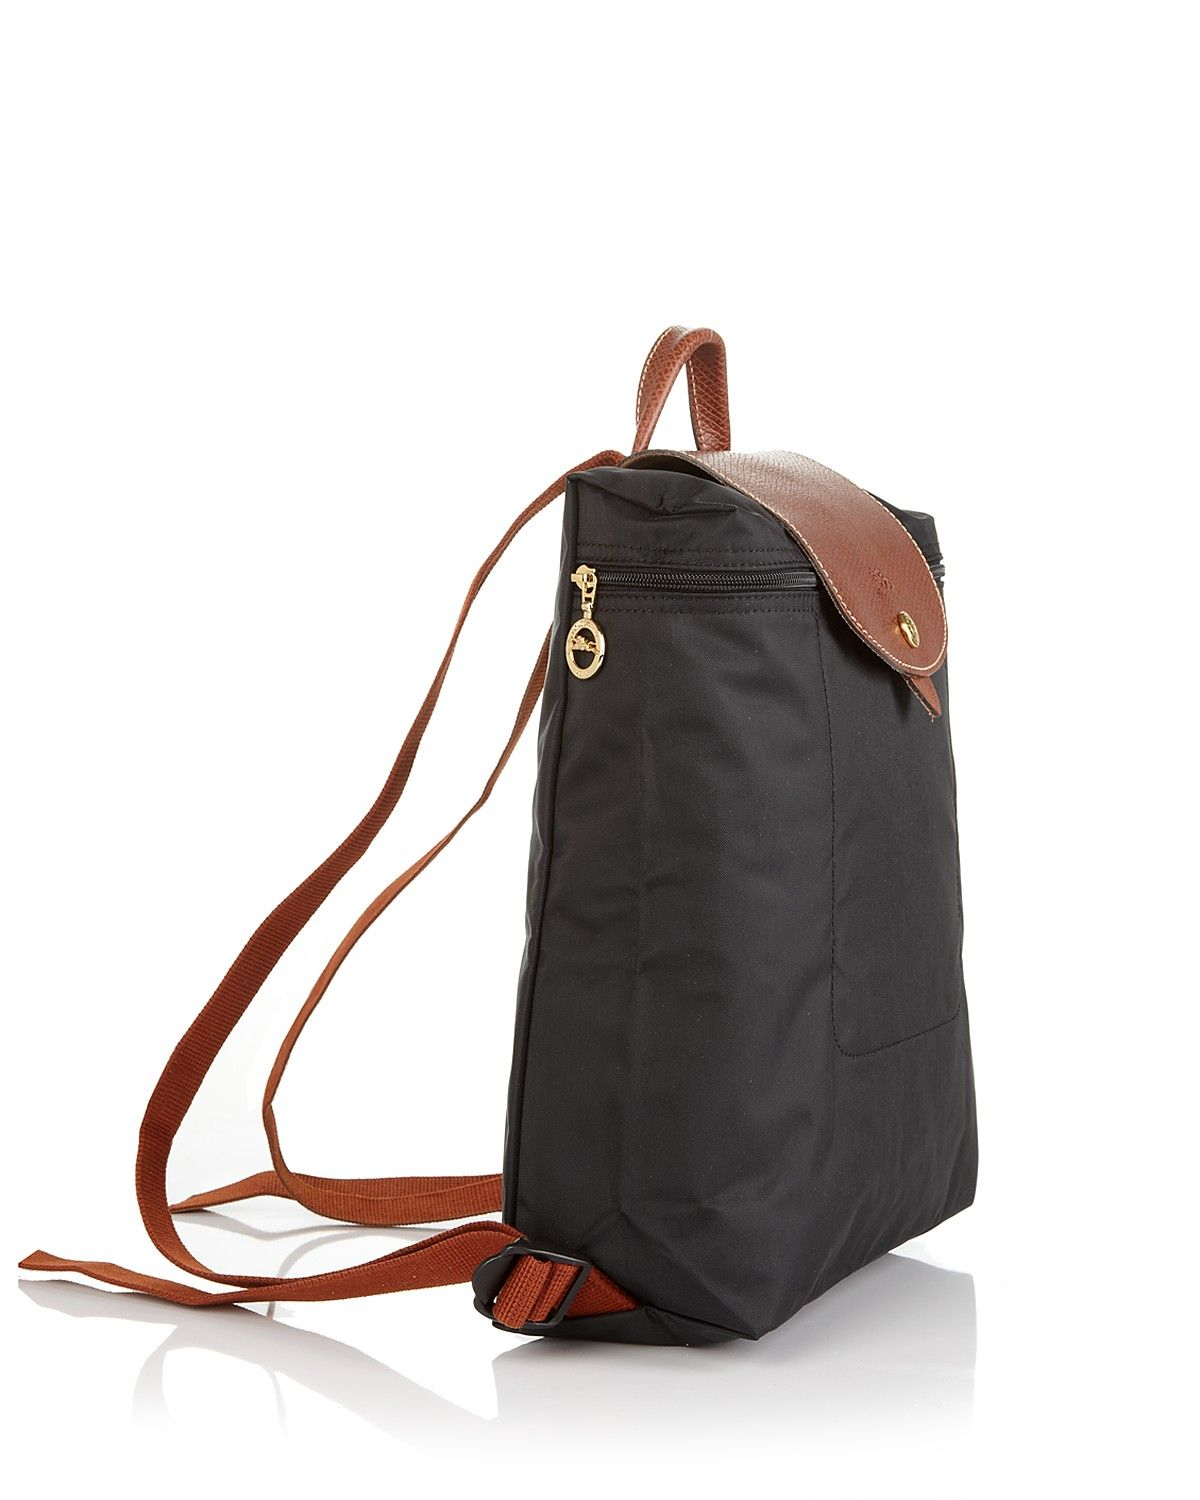 36ab1600efcf Longchamp Backpack - Le Pliage PRICE   125.00